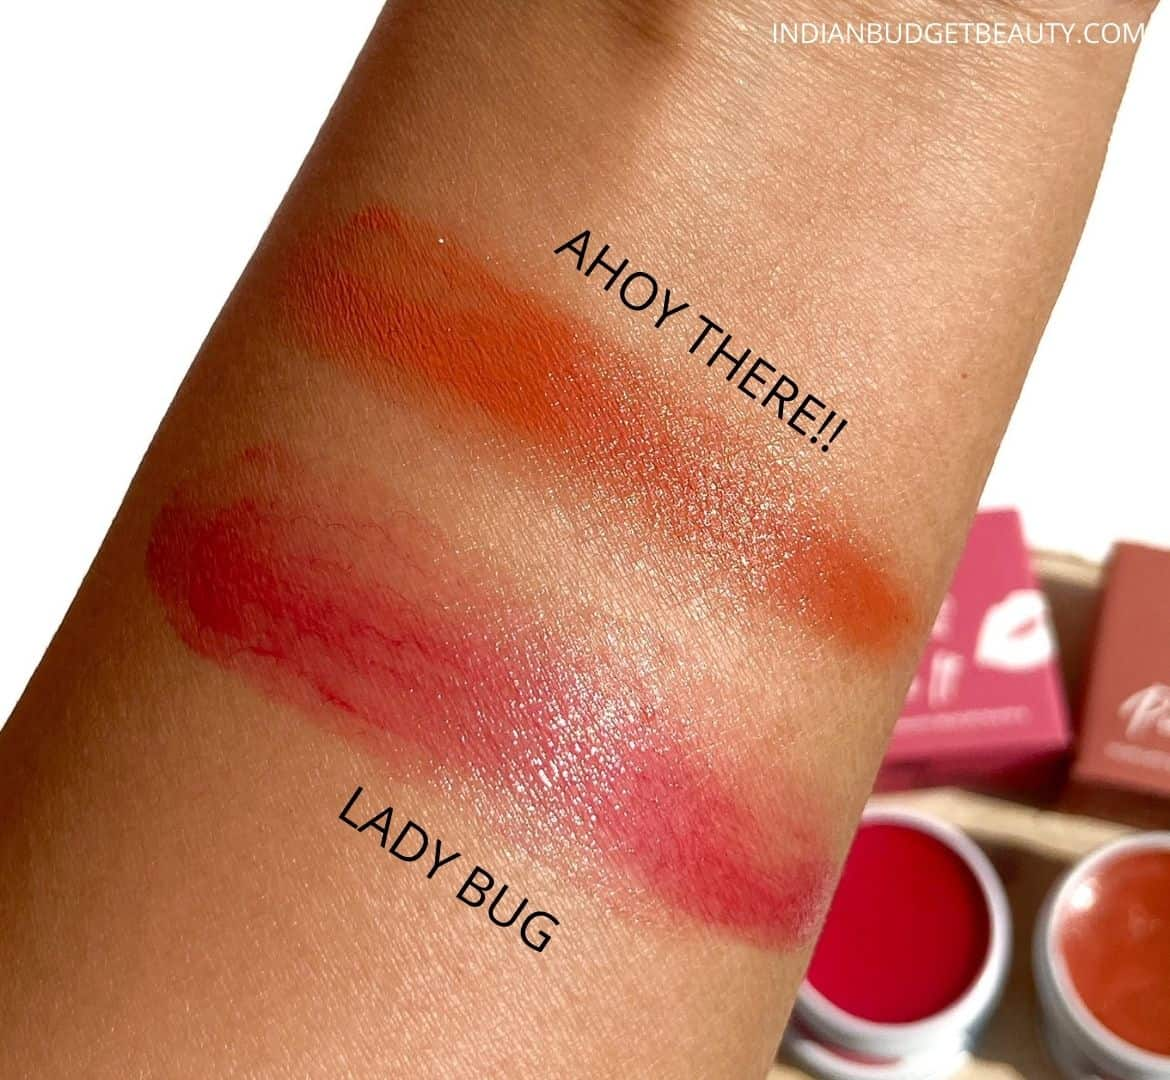 Earth Rhythm Tinted Lippie SPF 30 lady bug, ahoy there Swatches